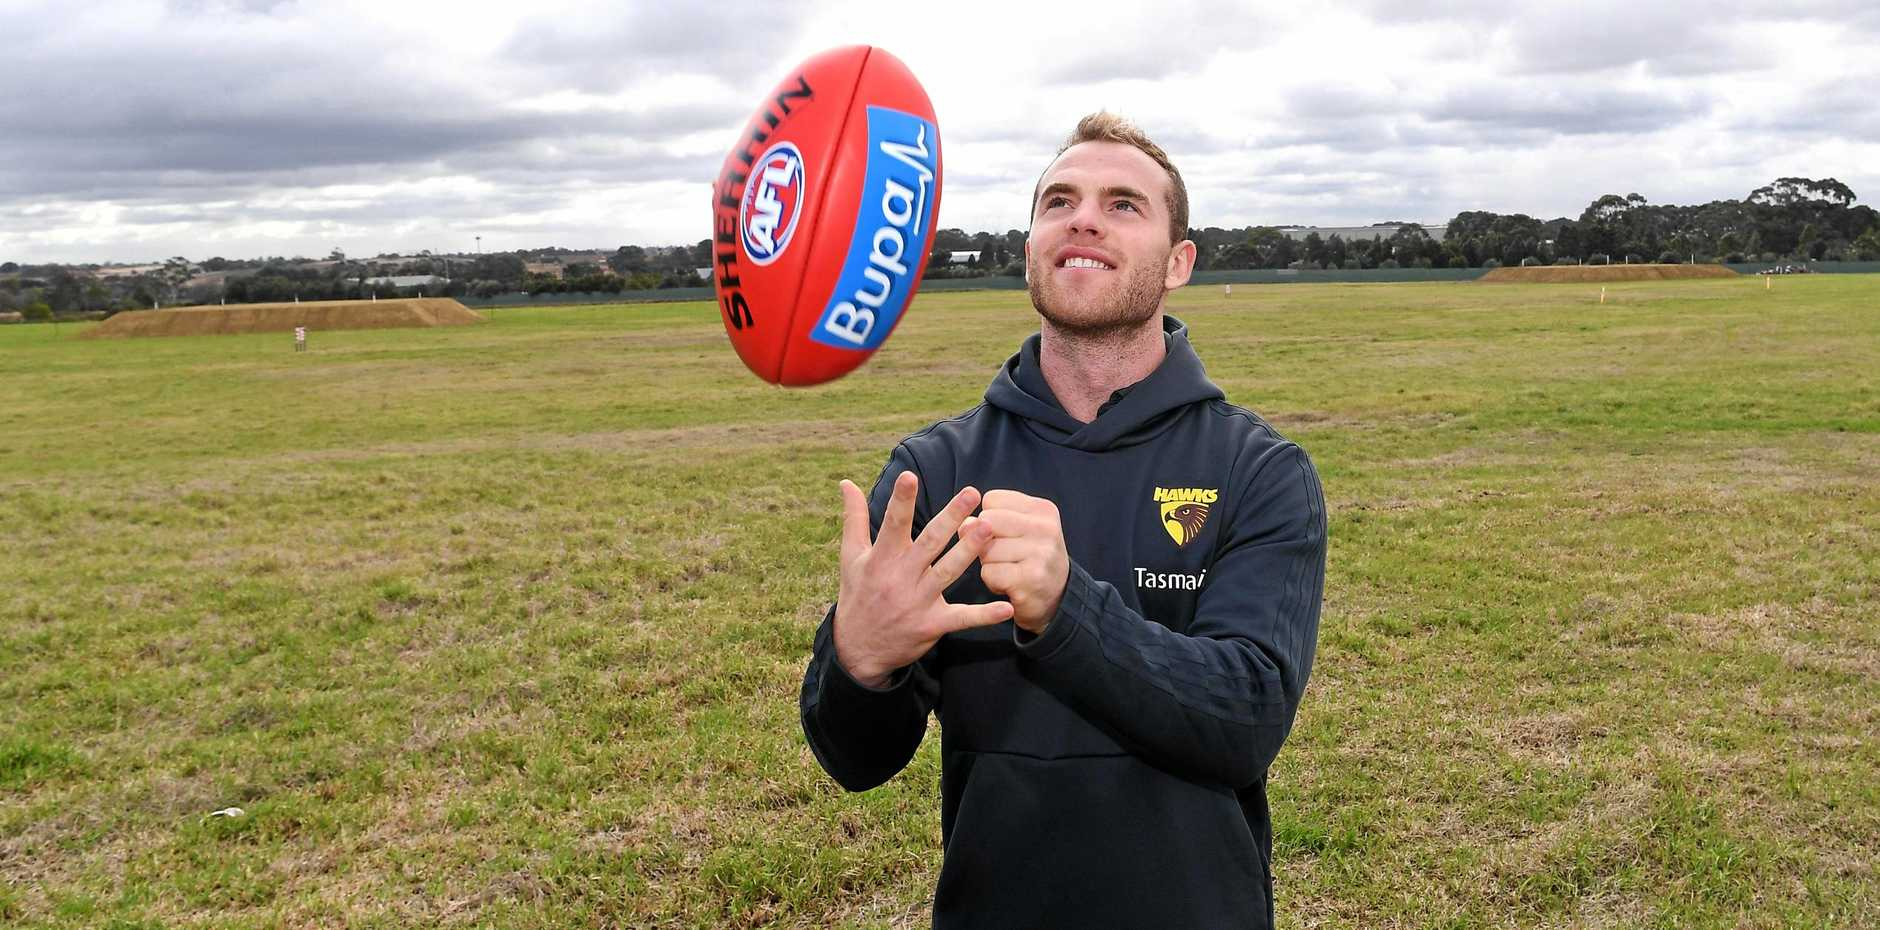 Reigning Brownlow medalist Tom Mitchell will play with Hawthorn until at least the end of the 2023 season. Picture: Julian Smith/AAP